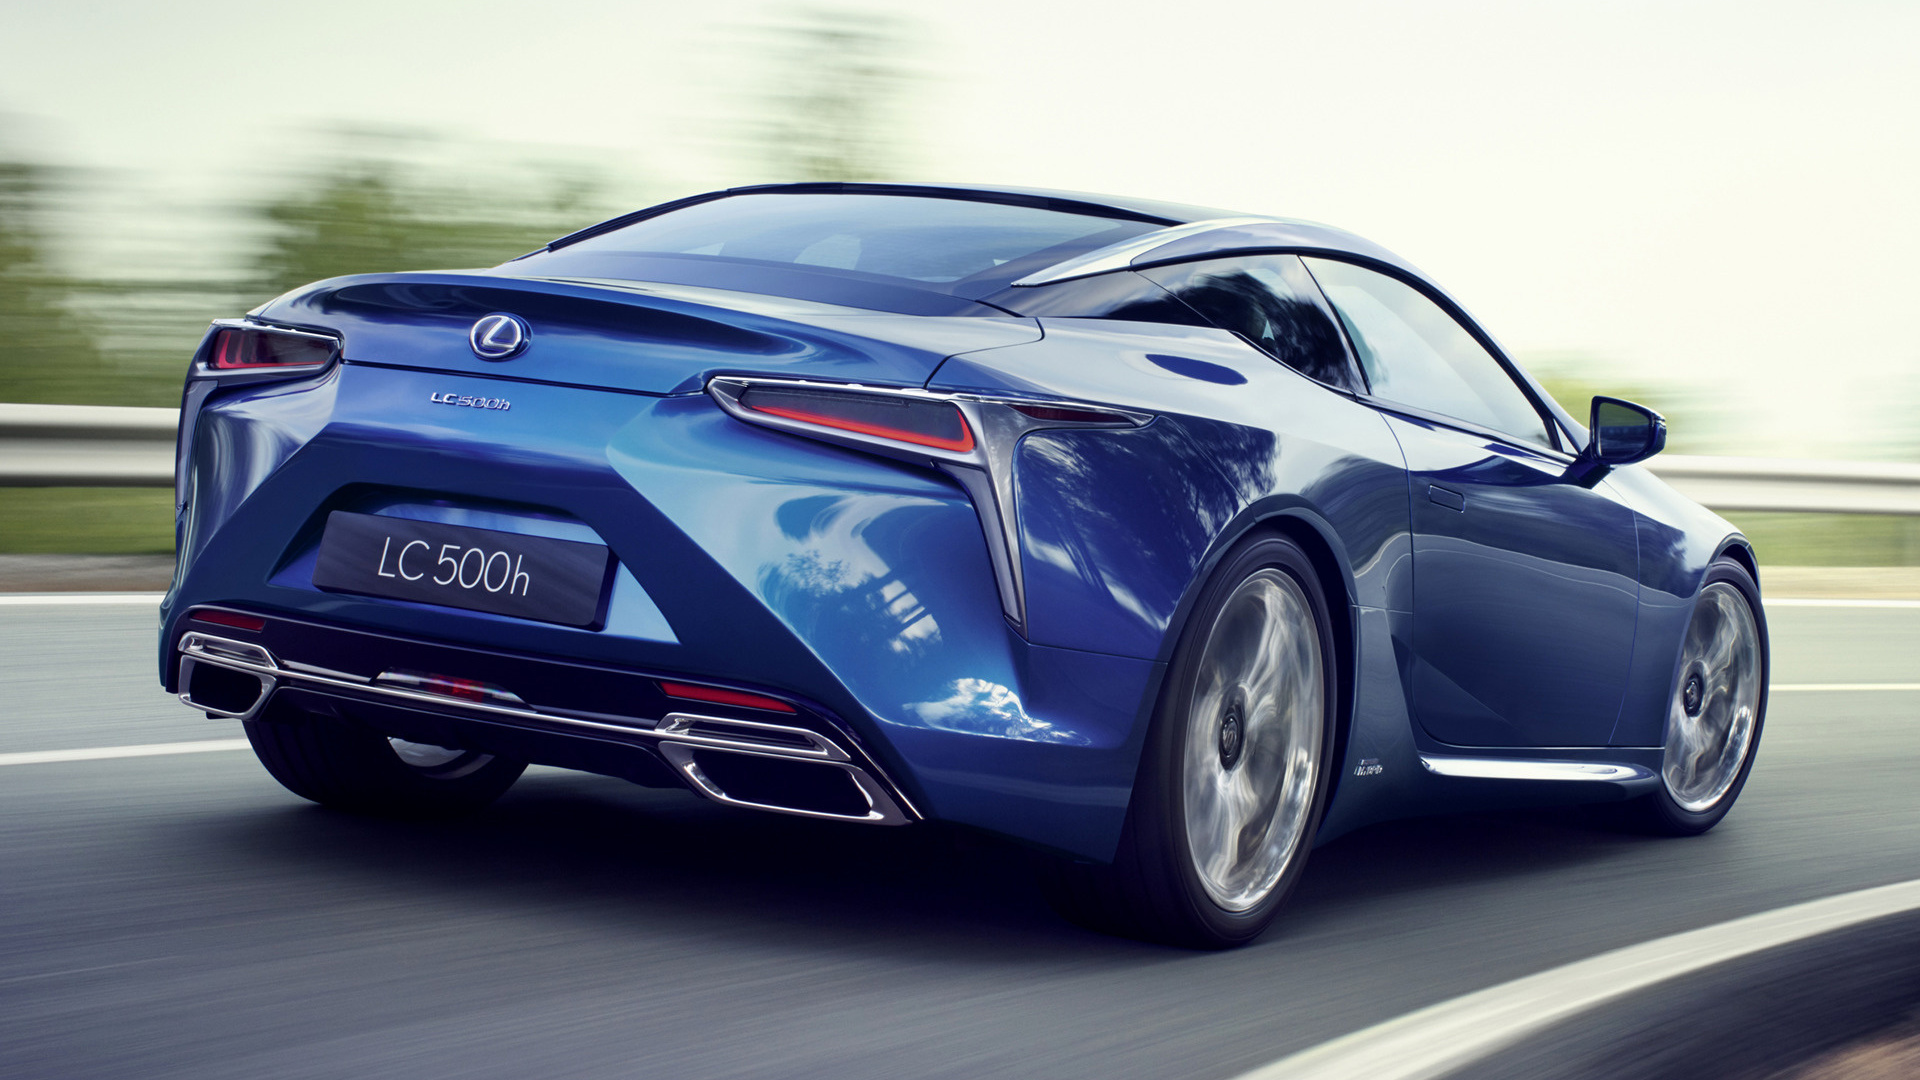 informative on hybrid cars Hybrid cars news find breaking news, commentary, and archival information about hybrid cars from the tribunedigital-chicagotribune.